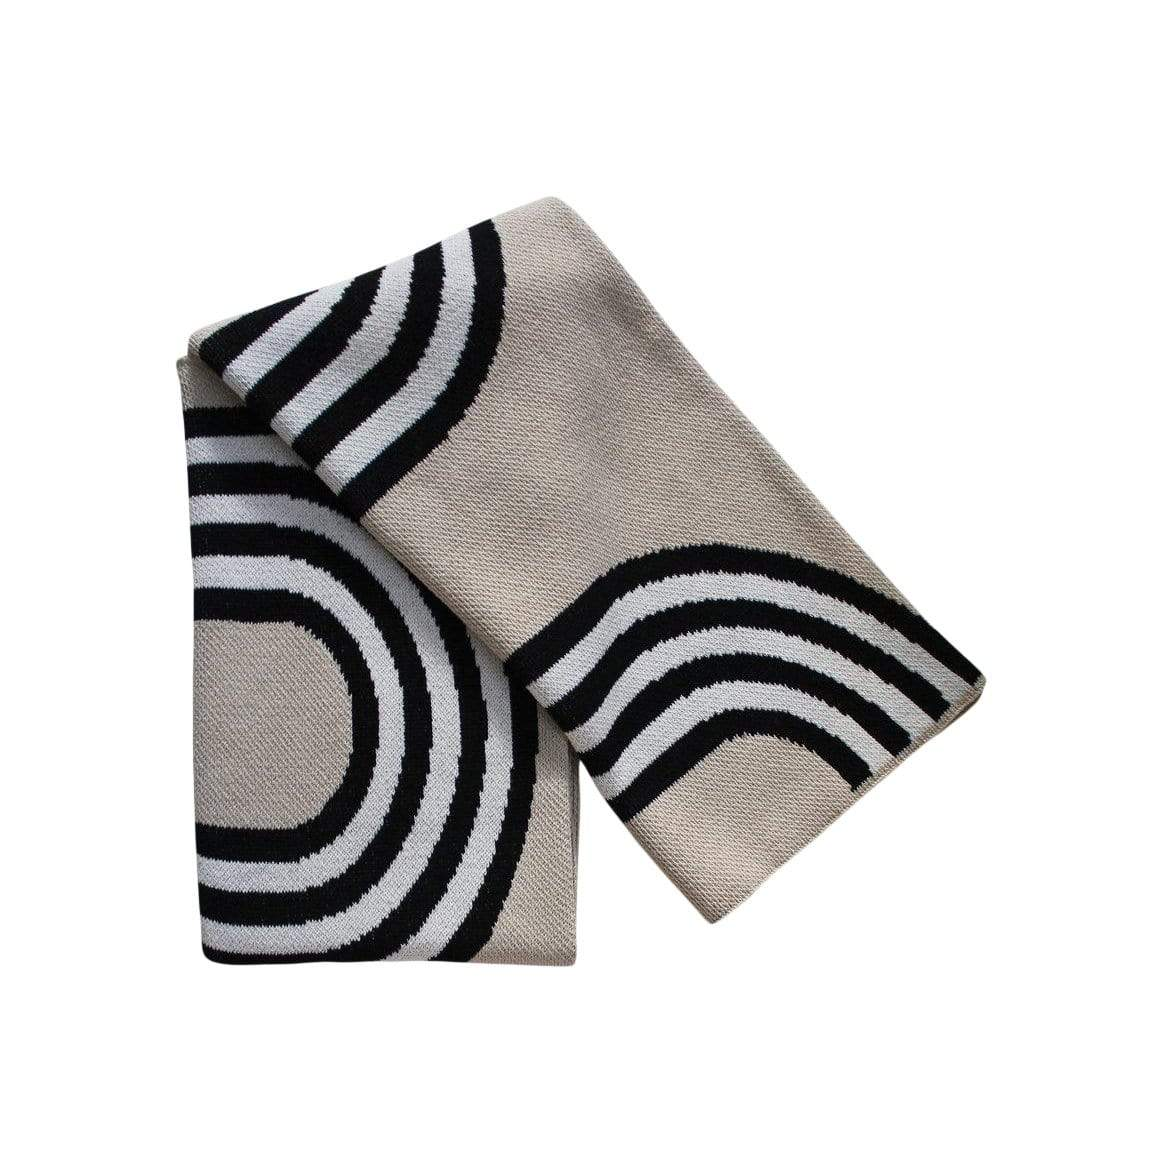 78th street- black / linen throw